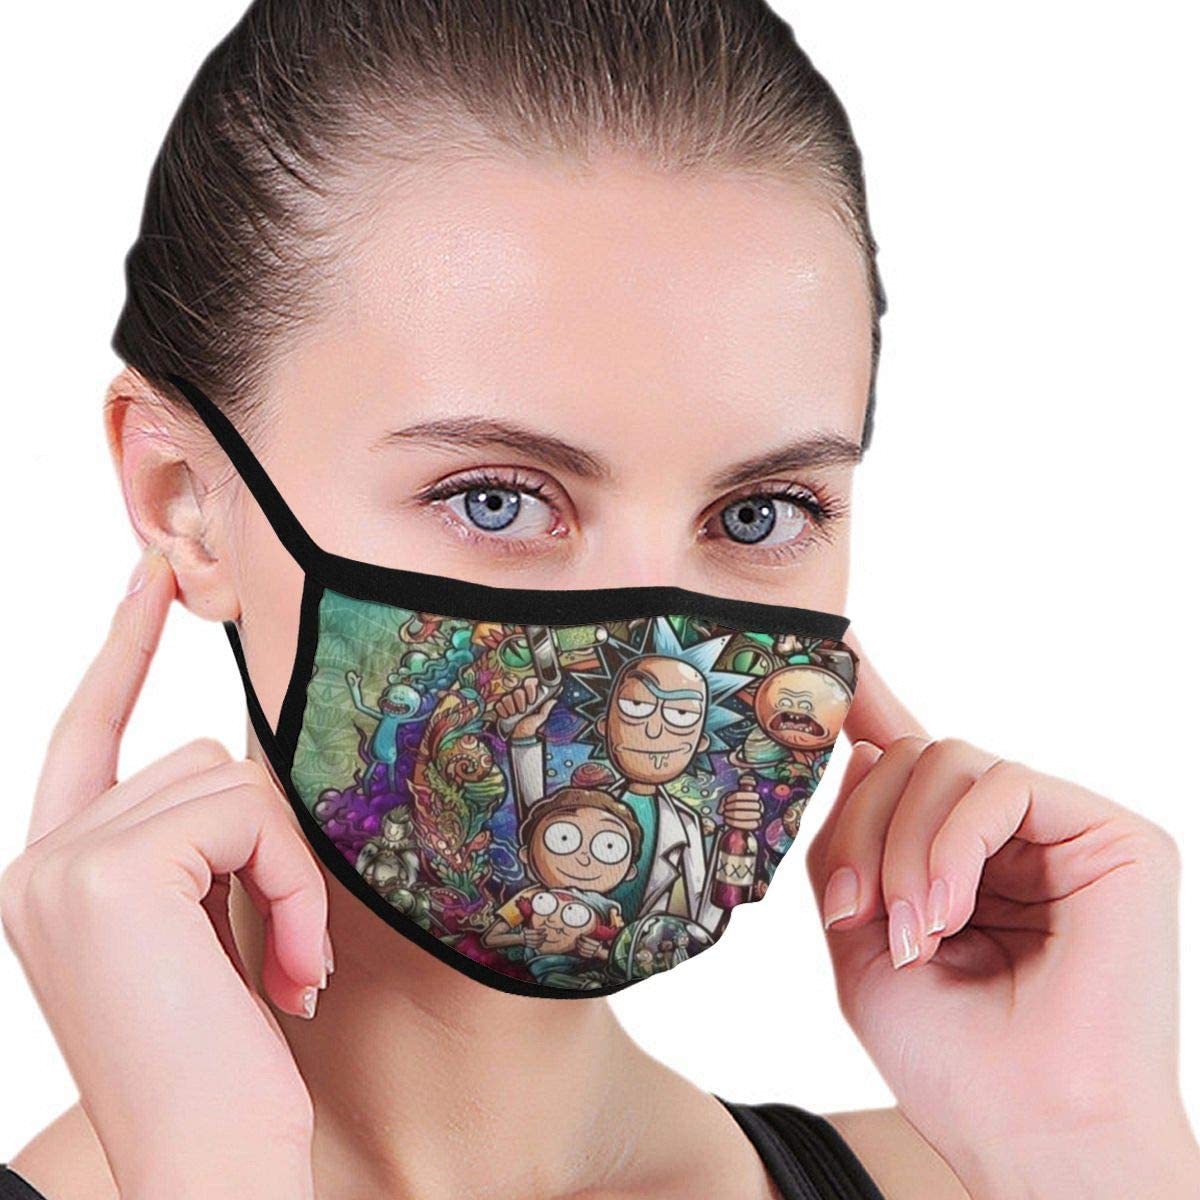 Children and Adolescents Ri-Ck /& Mor-Ty Protection Cover Your Nose and Mouth Windproof Dustproof